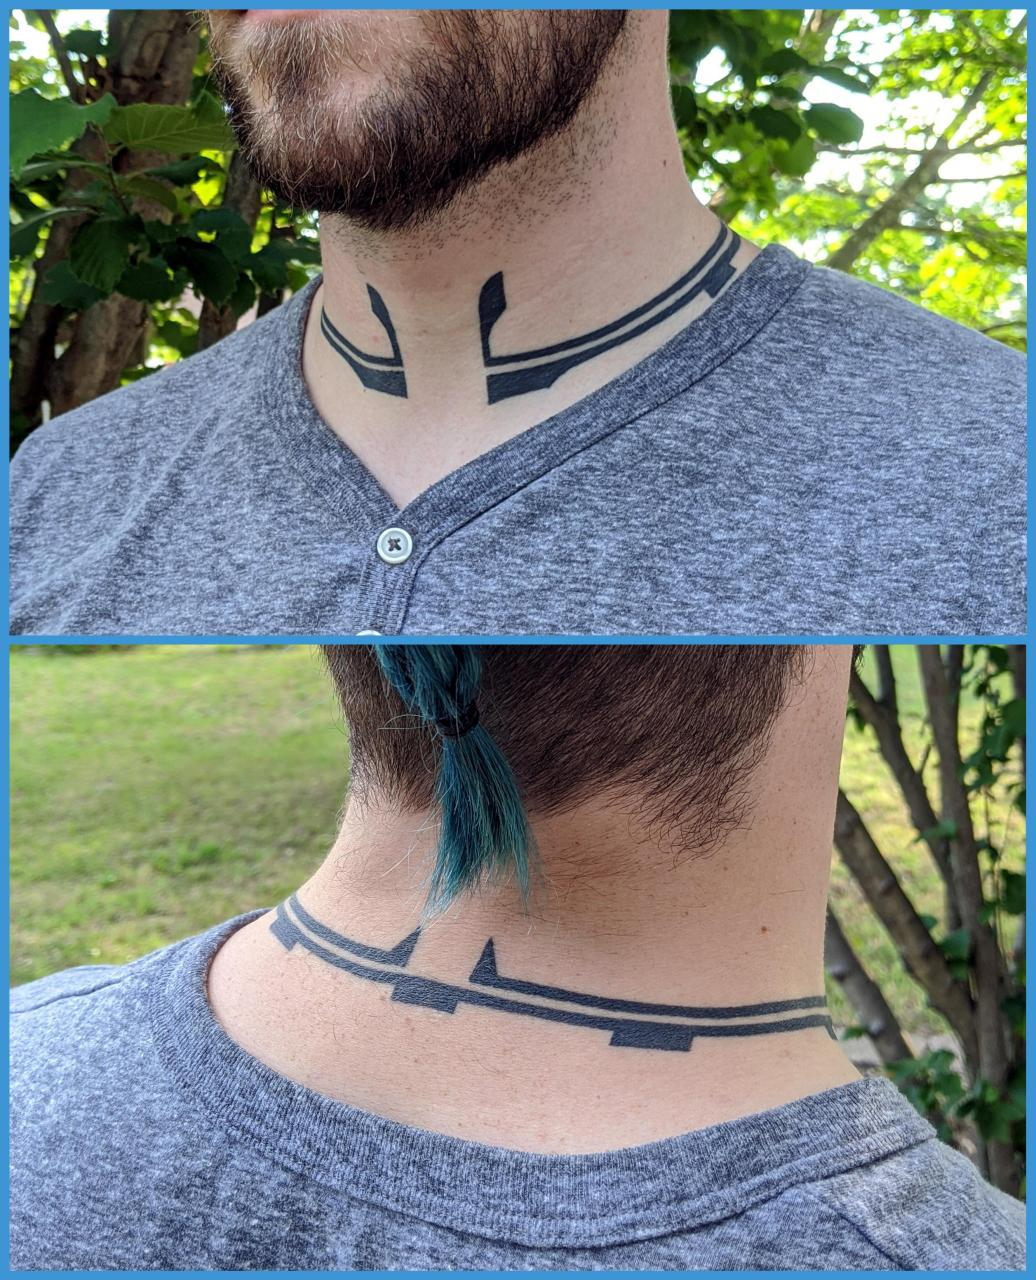 My Belter neck tattoo (The Expanse)! Done on NYE by Kevin Craft @ evolvink/Bordentown NJ